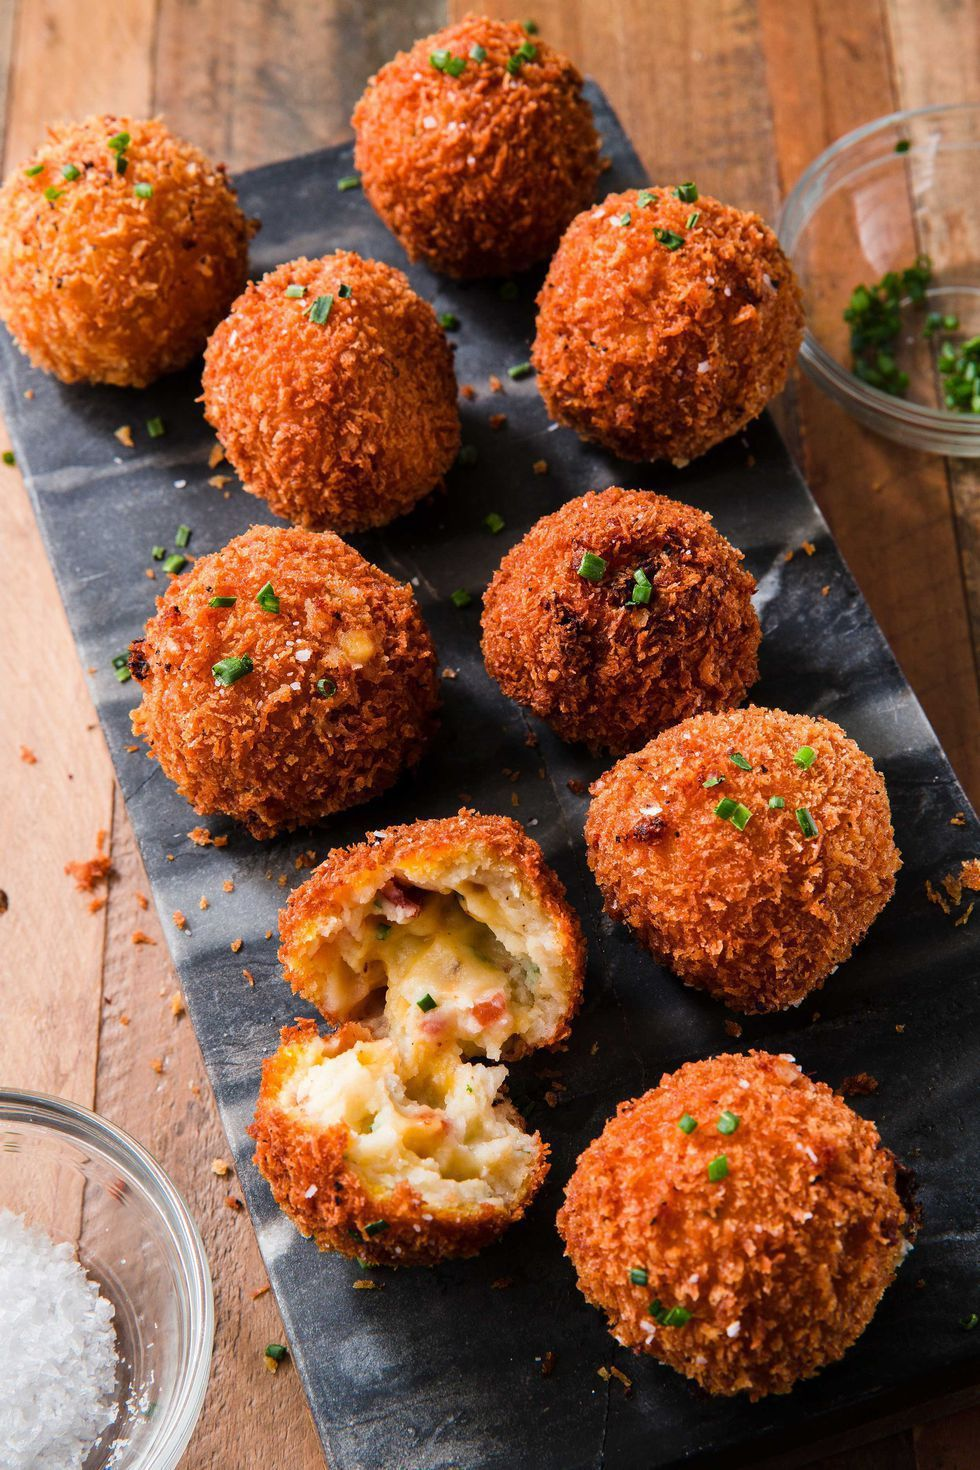 Fried Mashed Potato Balls